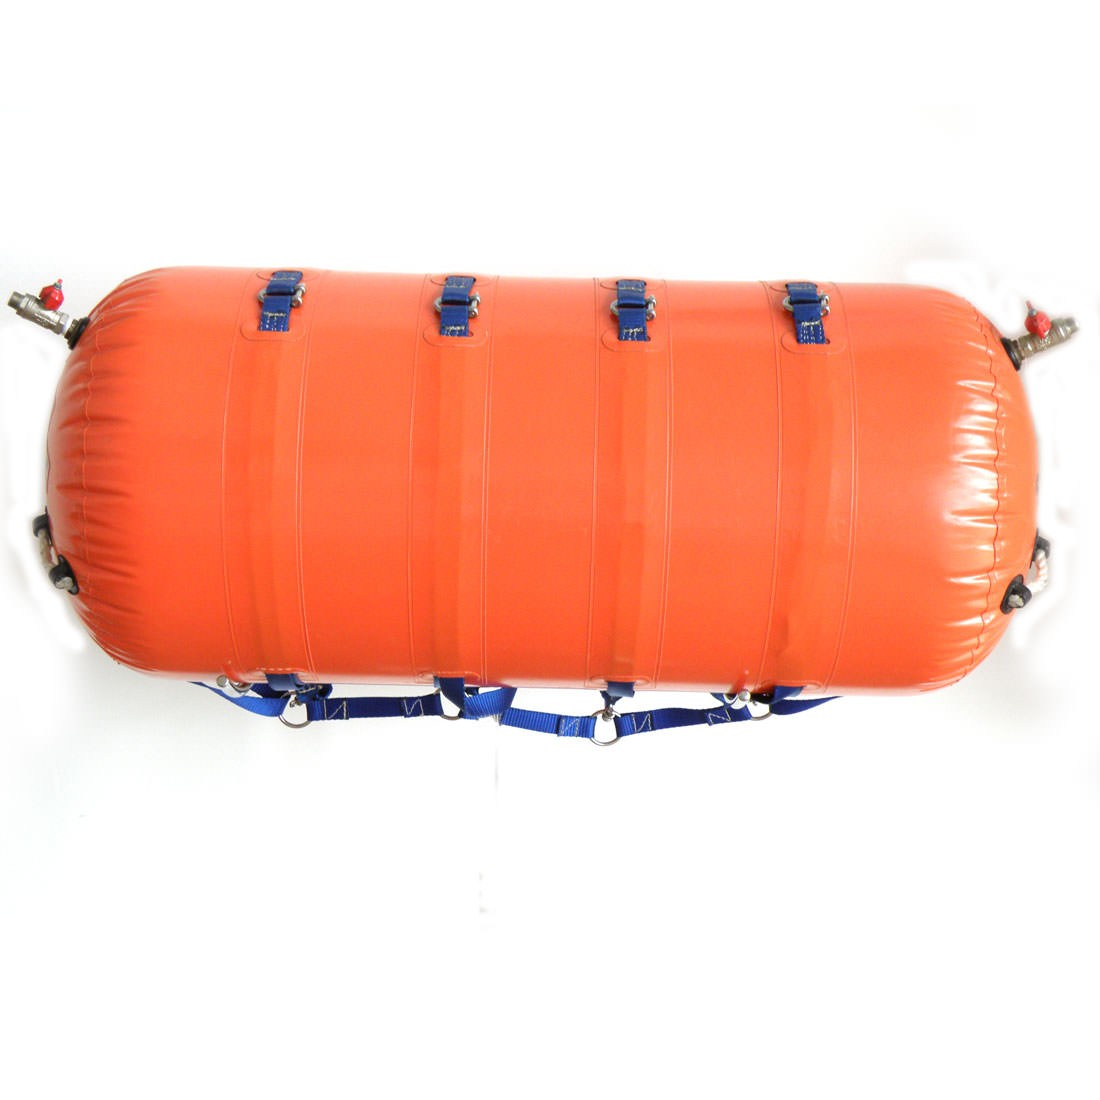 Seaflex Inflatable Buoyancy Unit 551 lbs 250 kg Lift Capacity SEF-250IBU-016